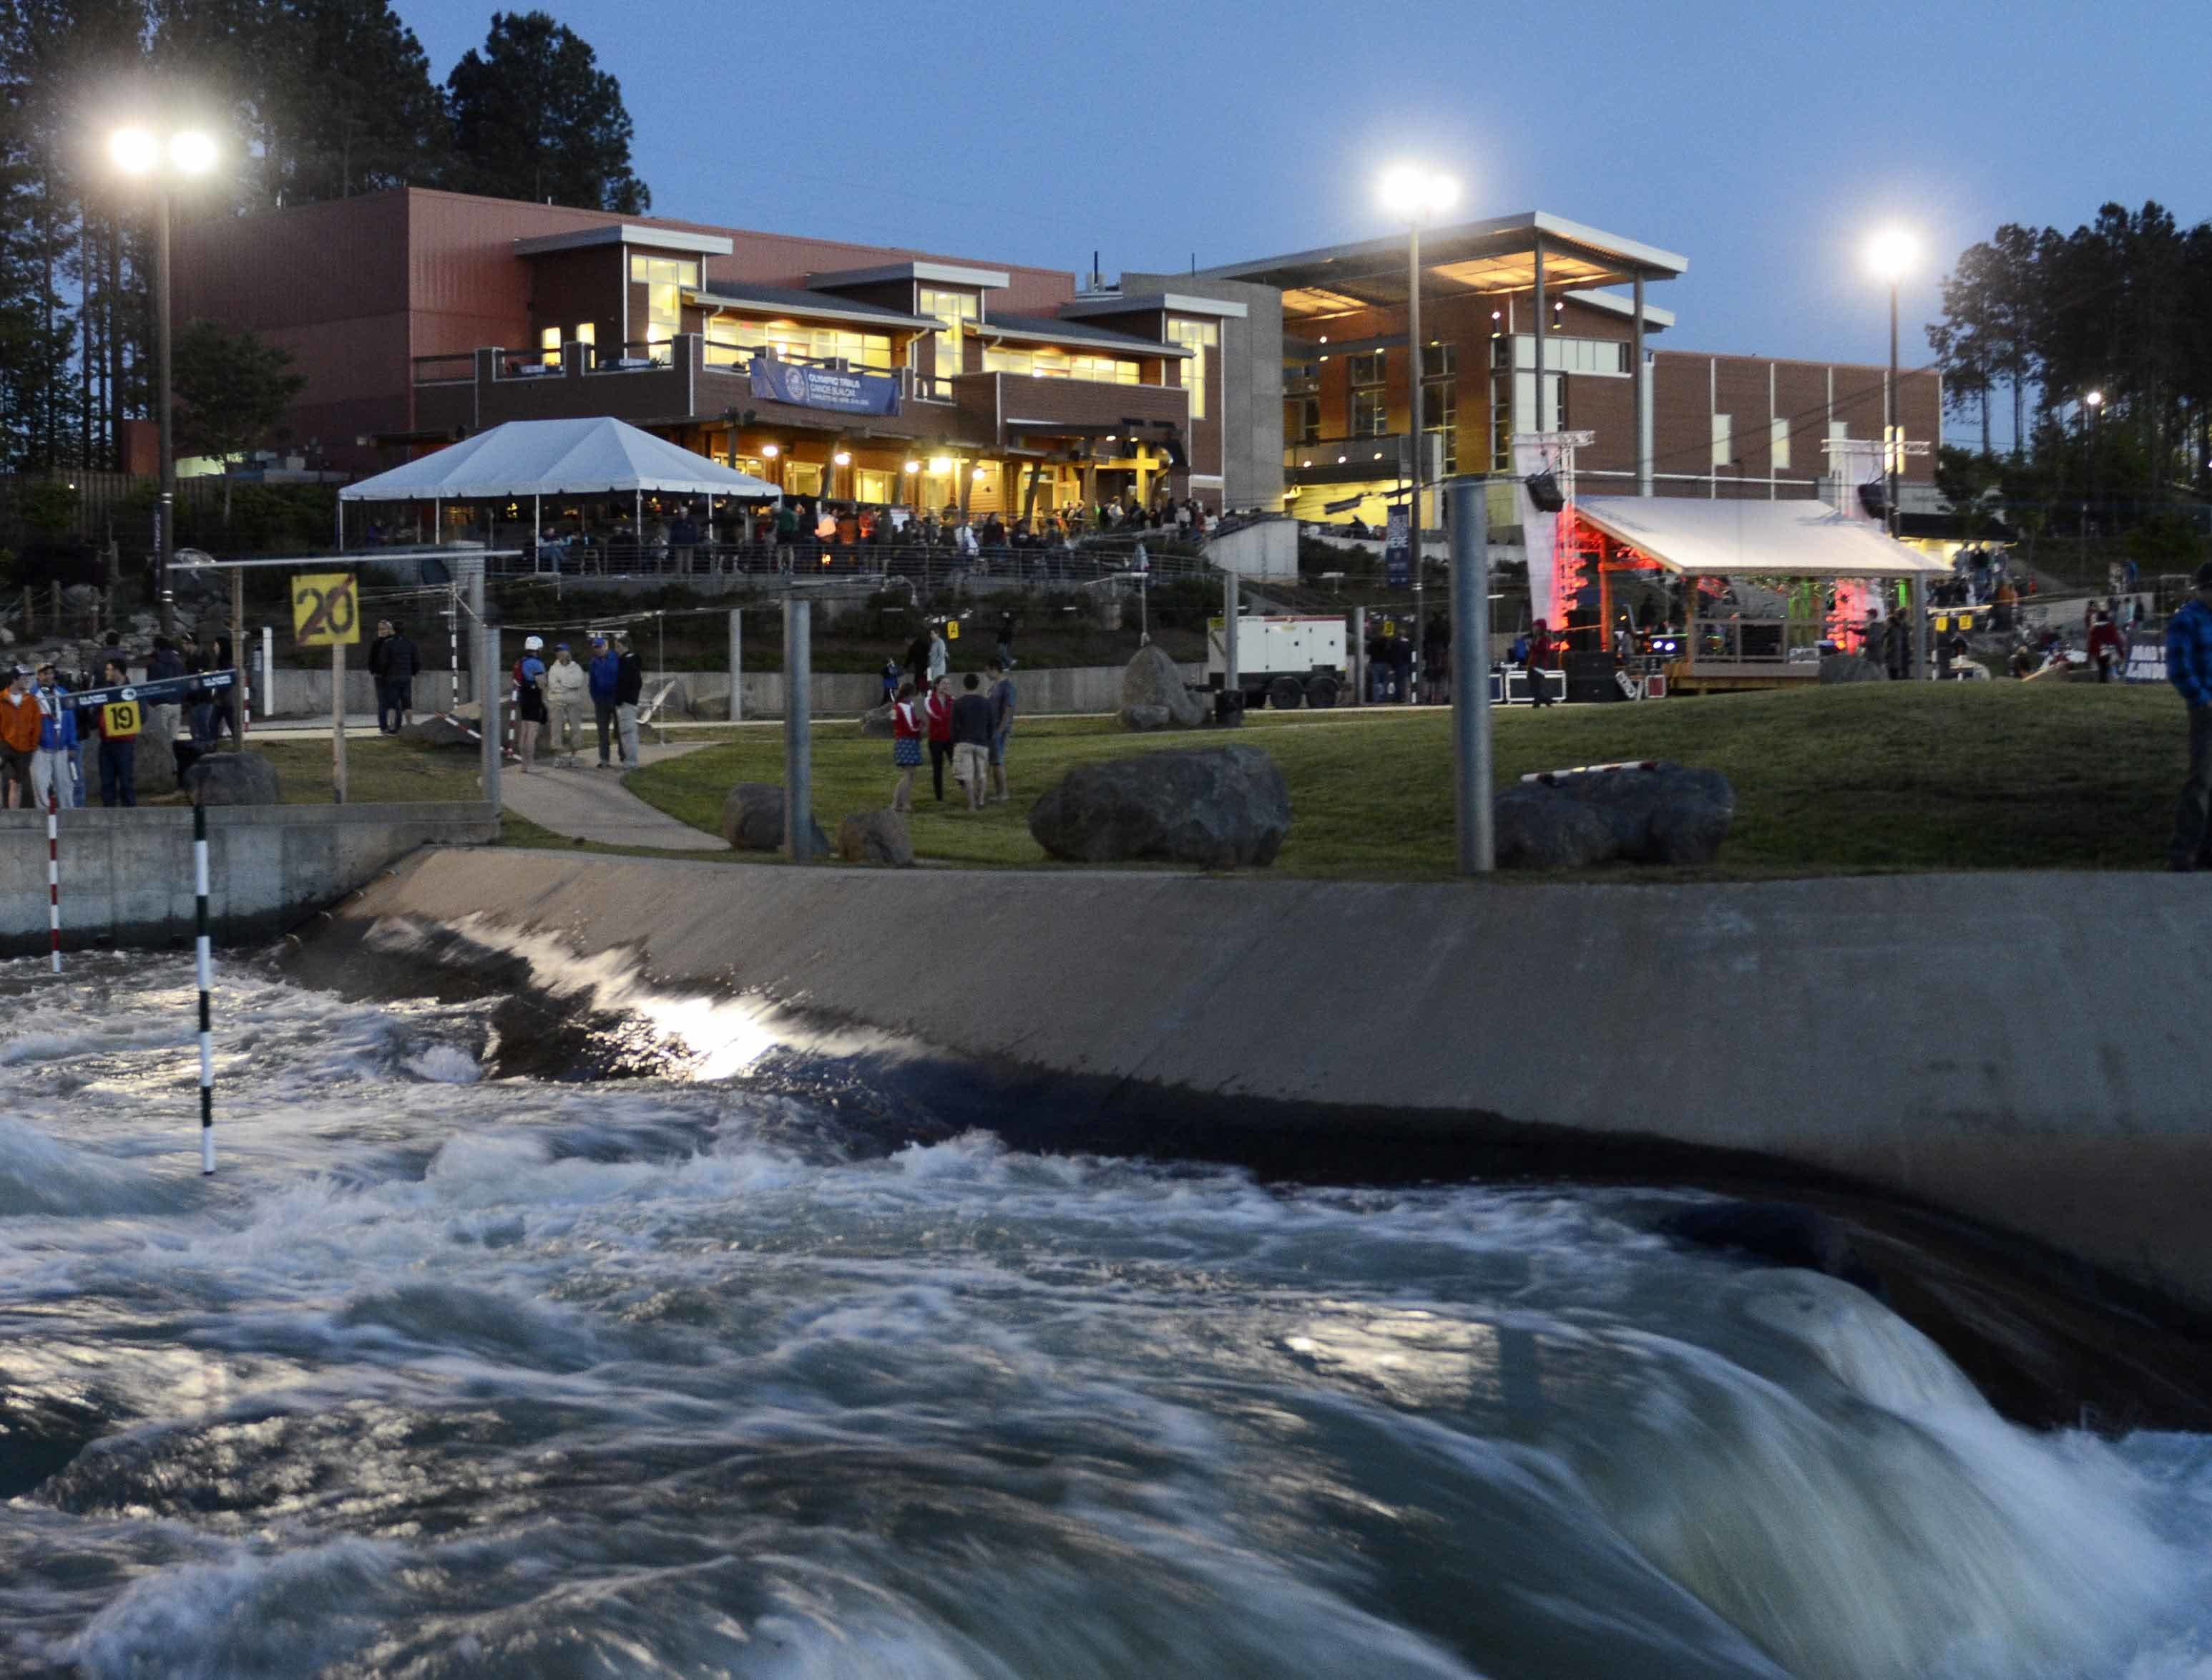 CDC: Amoeba didn't die in whitewater center's murky churn